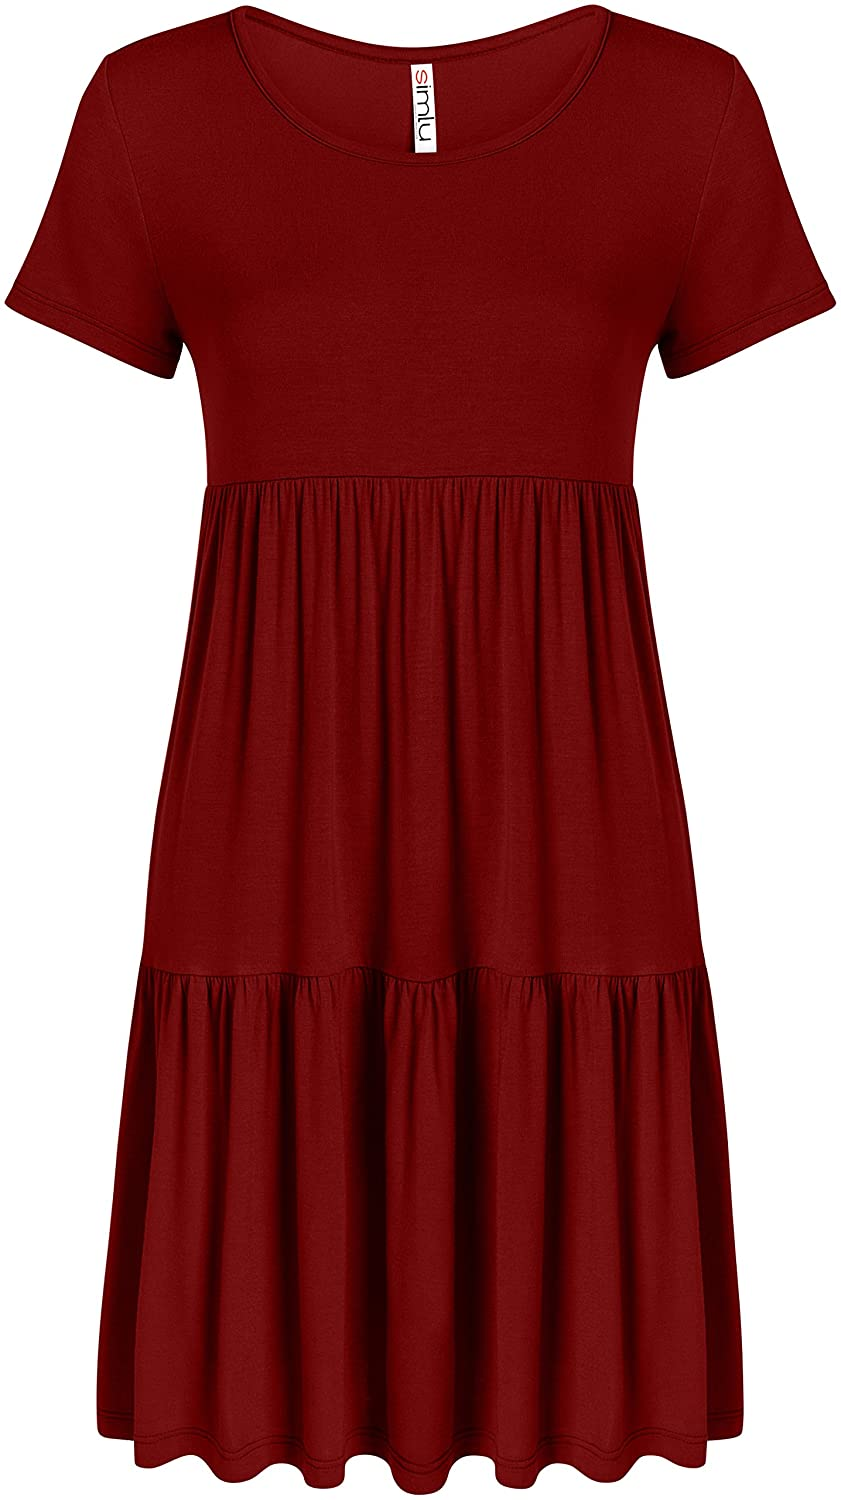 f18b6f28877 Casual Tiered T Shirt Dresses for Women Summer Sundress - USA at Amazon  Women s Clothing store